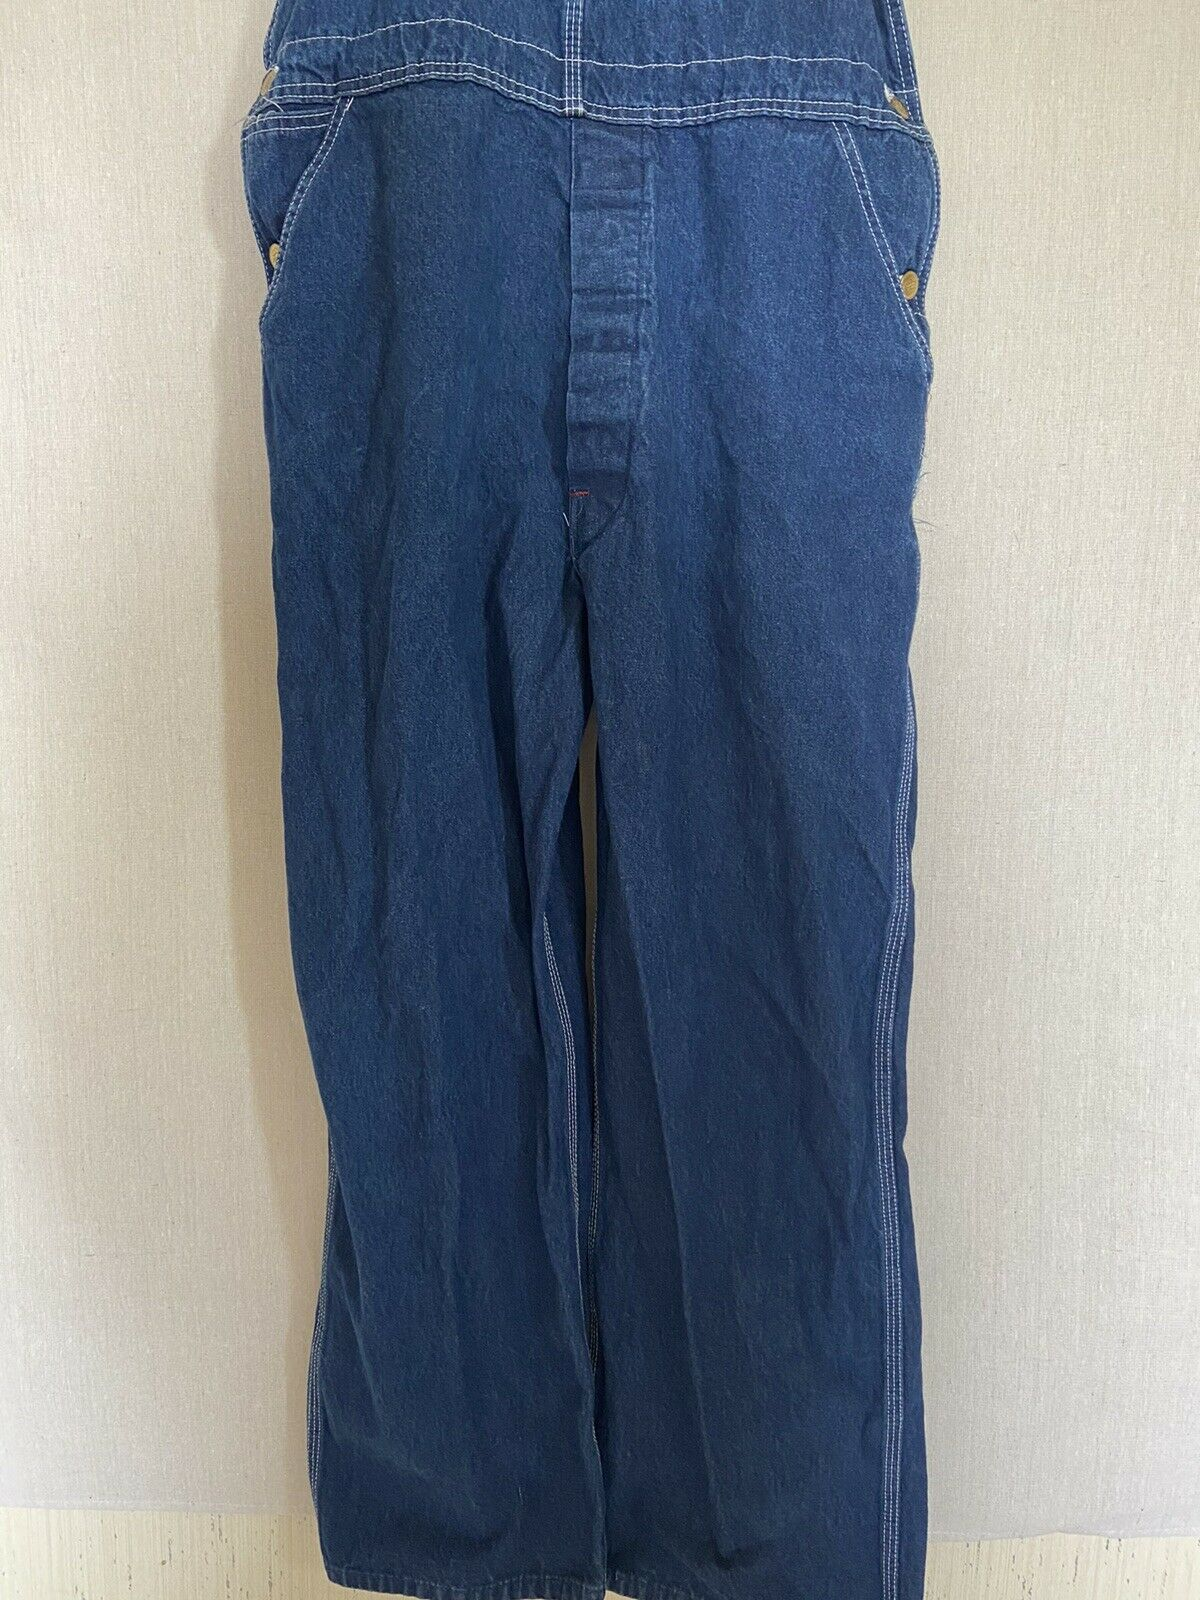 Dickies Denim Overalls Size 38x30 Fit 36x29 - image 4